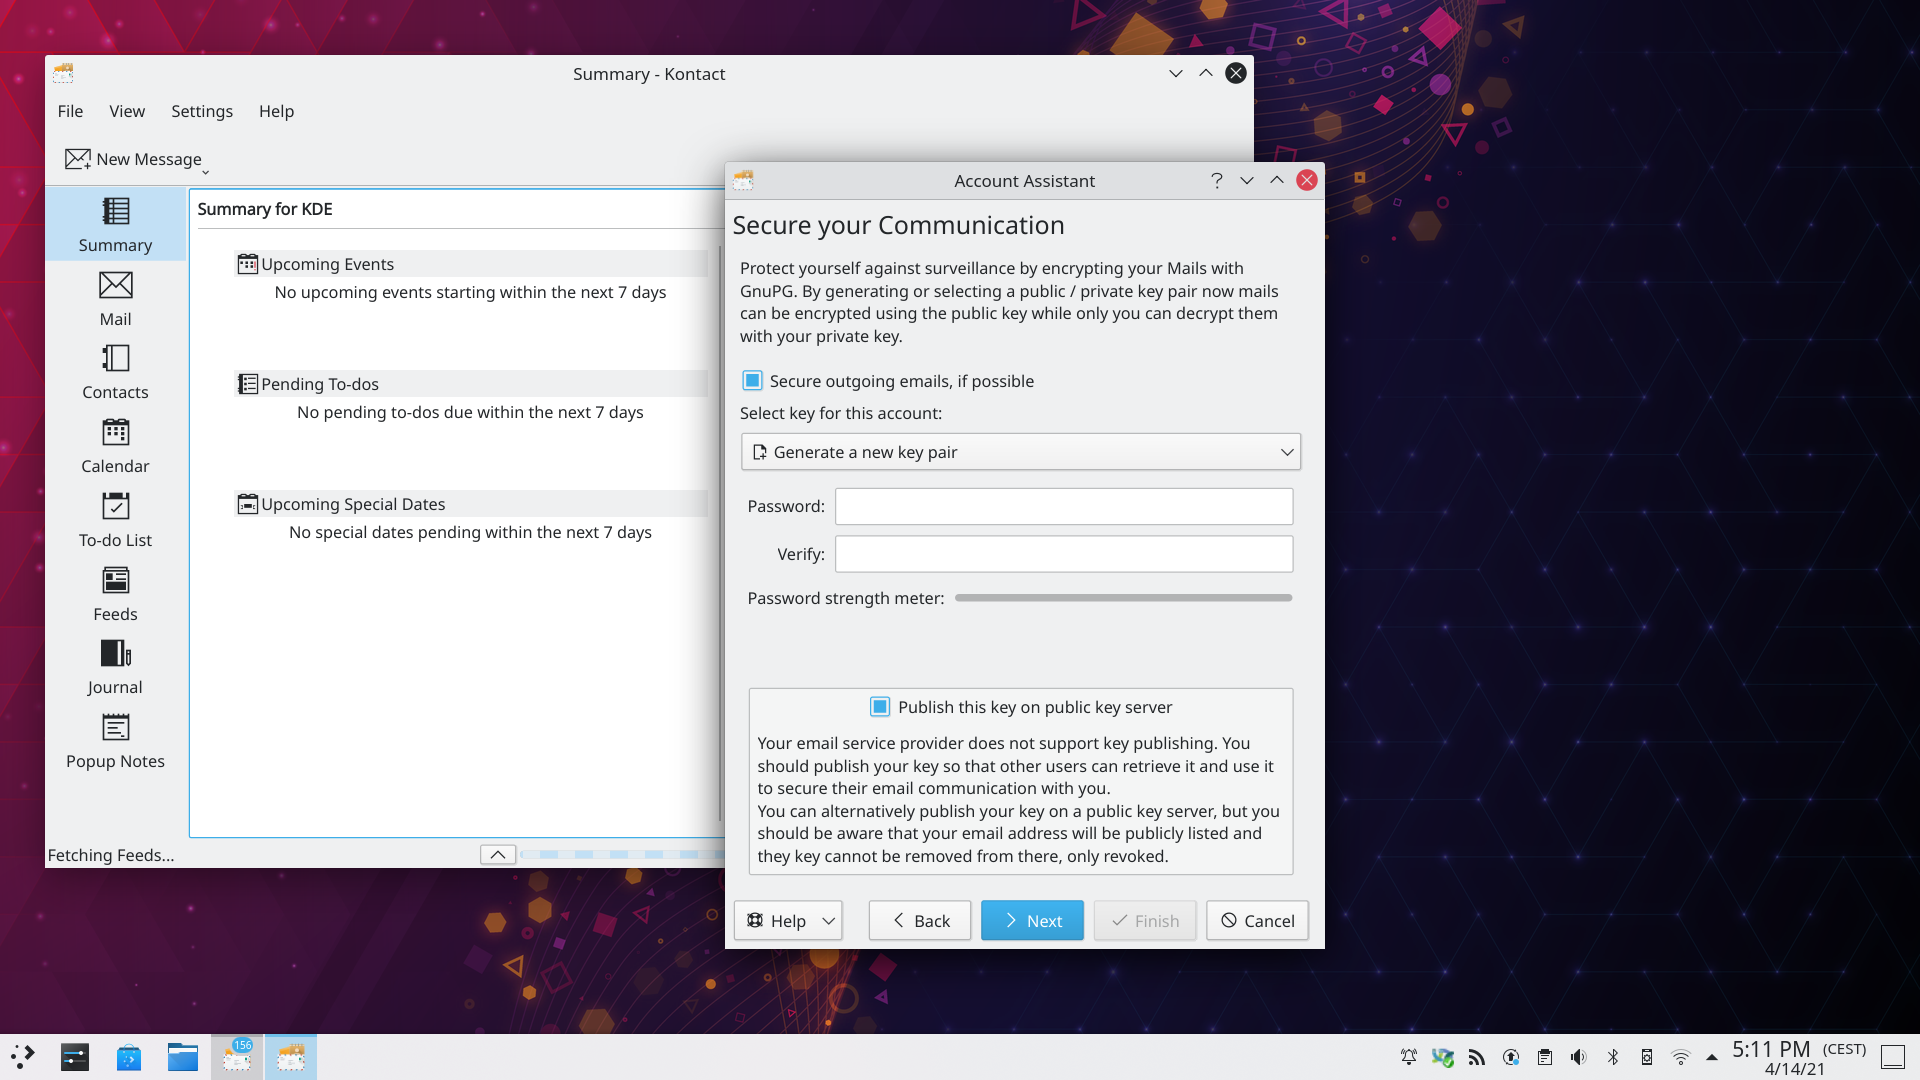 KMail security configuration